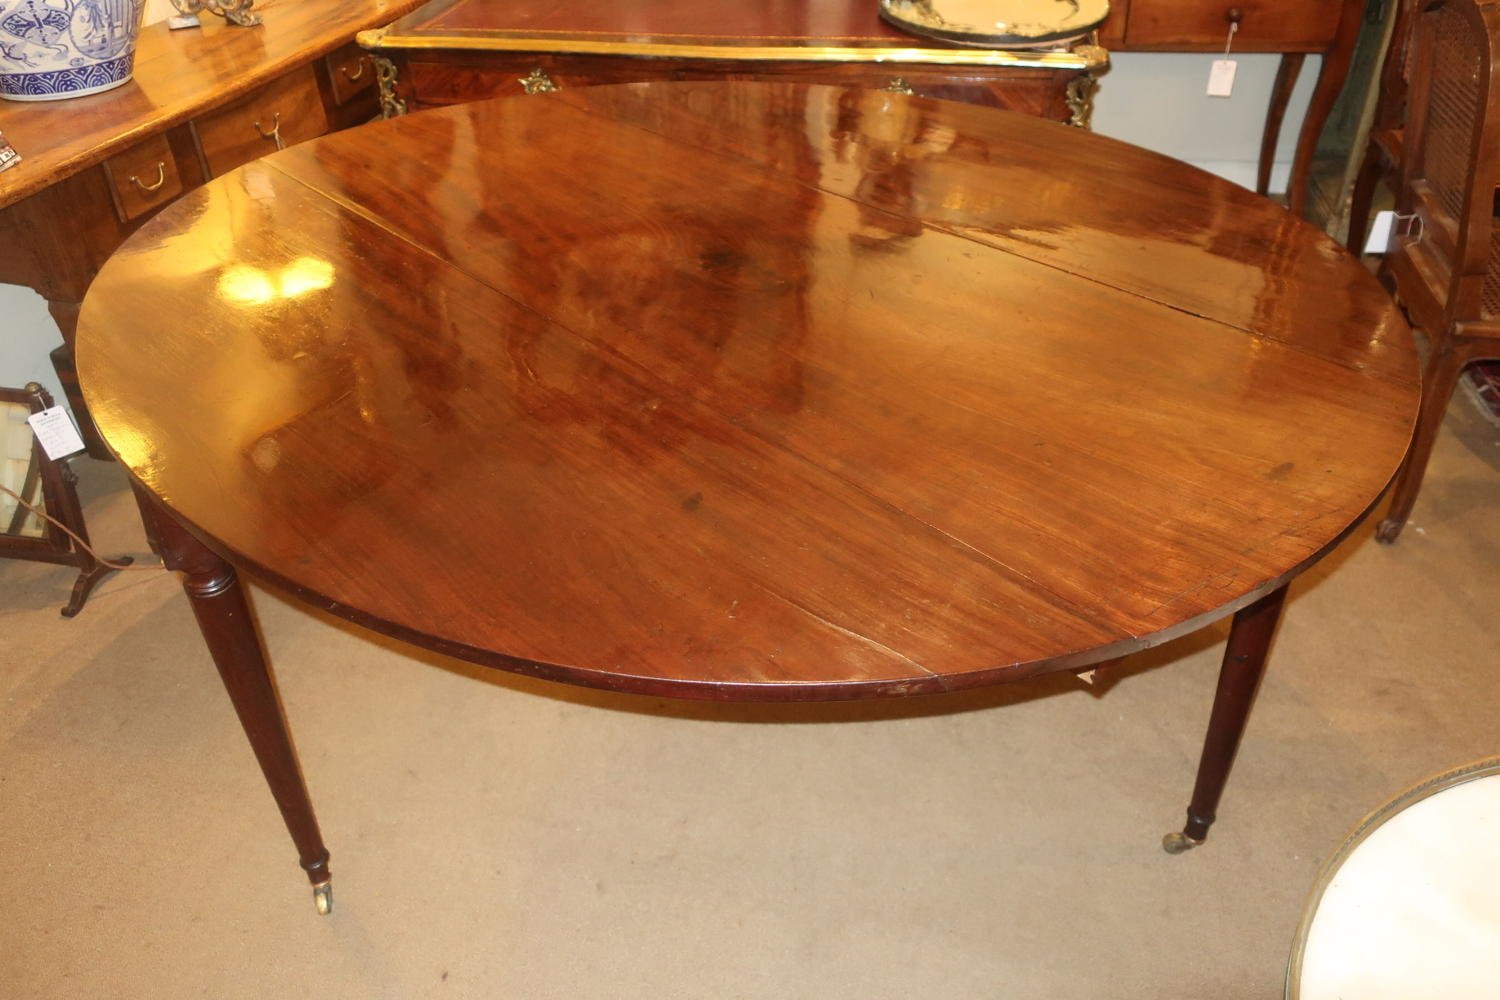 Large 18th Century oval table